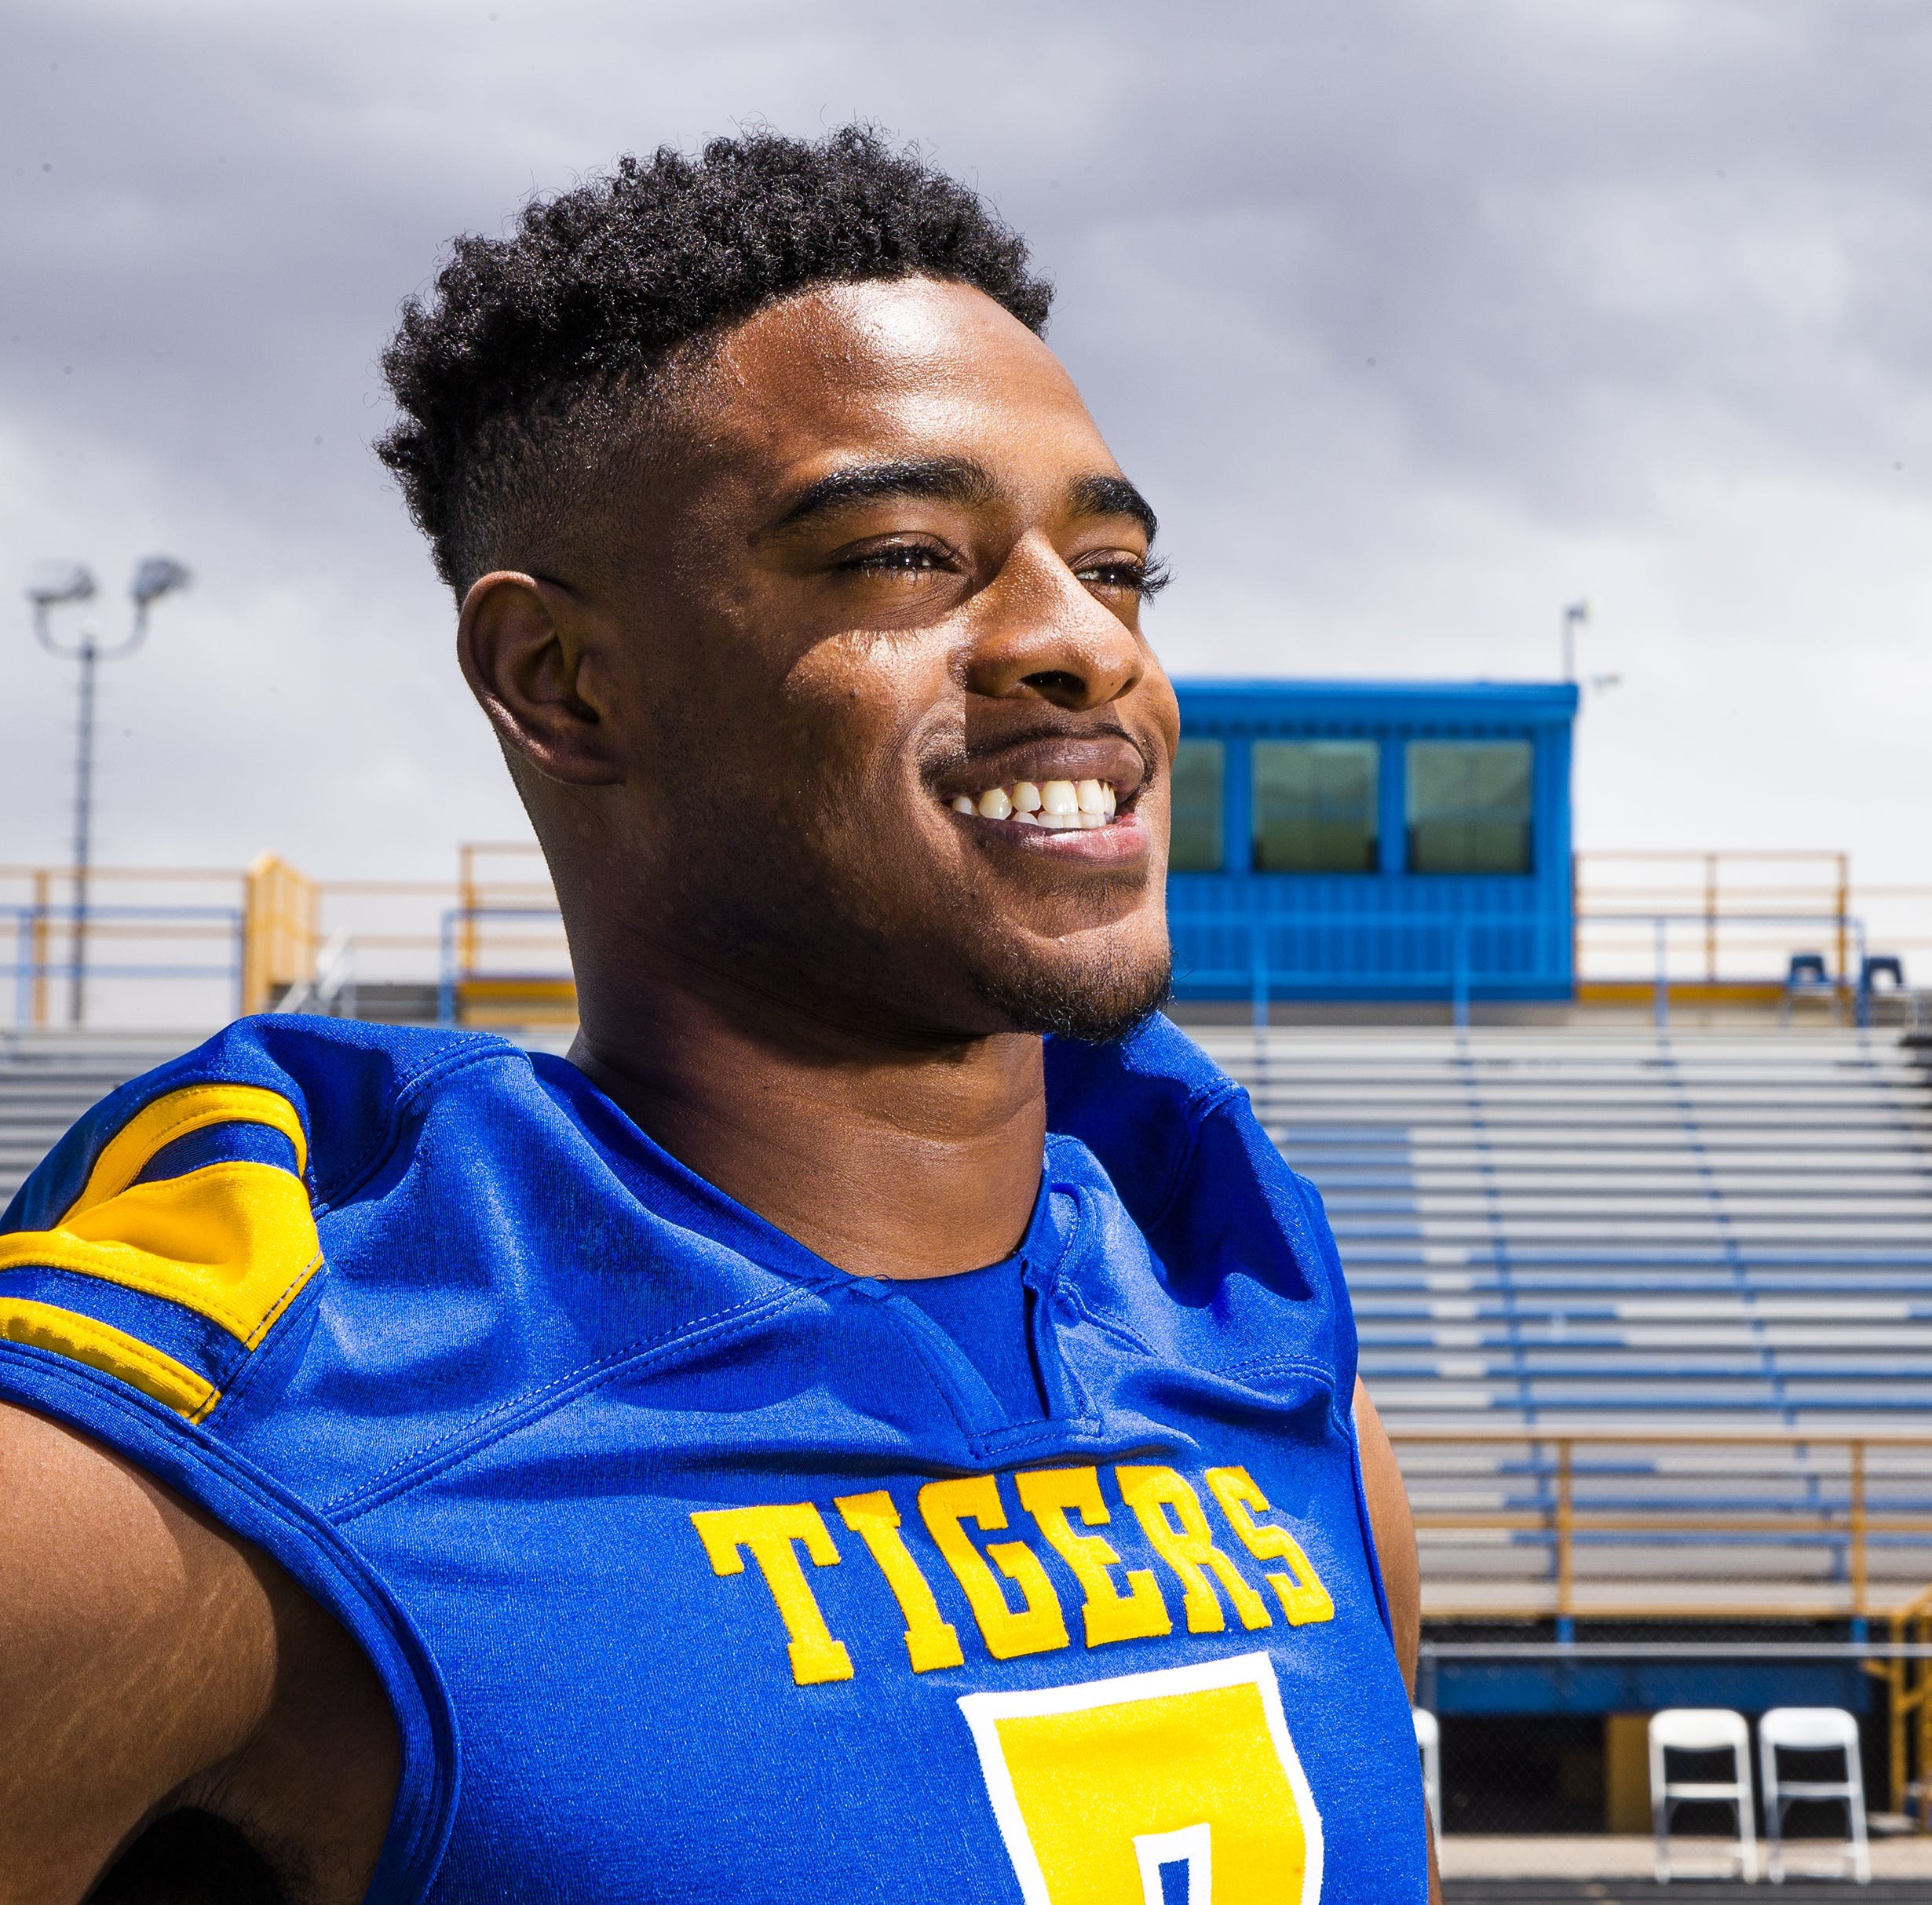 Triumphant walk: Marana football player Tariq Jordan to get diploma after nearly losing leg